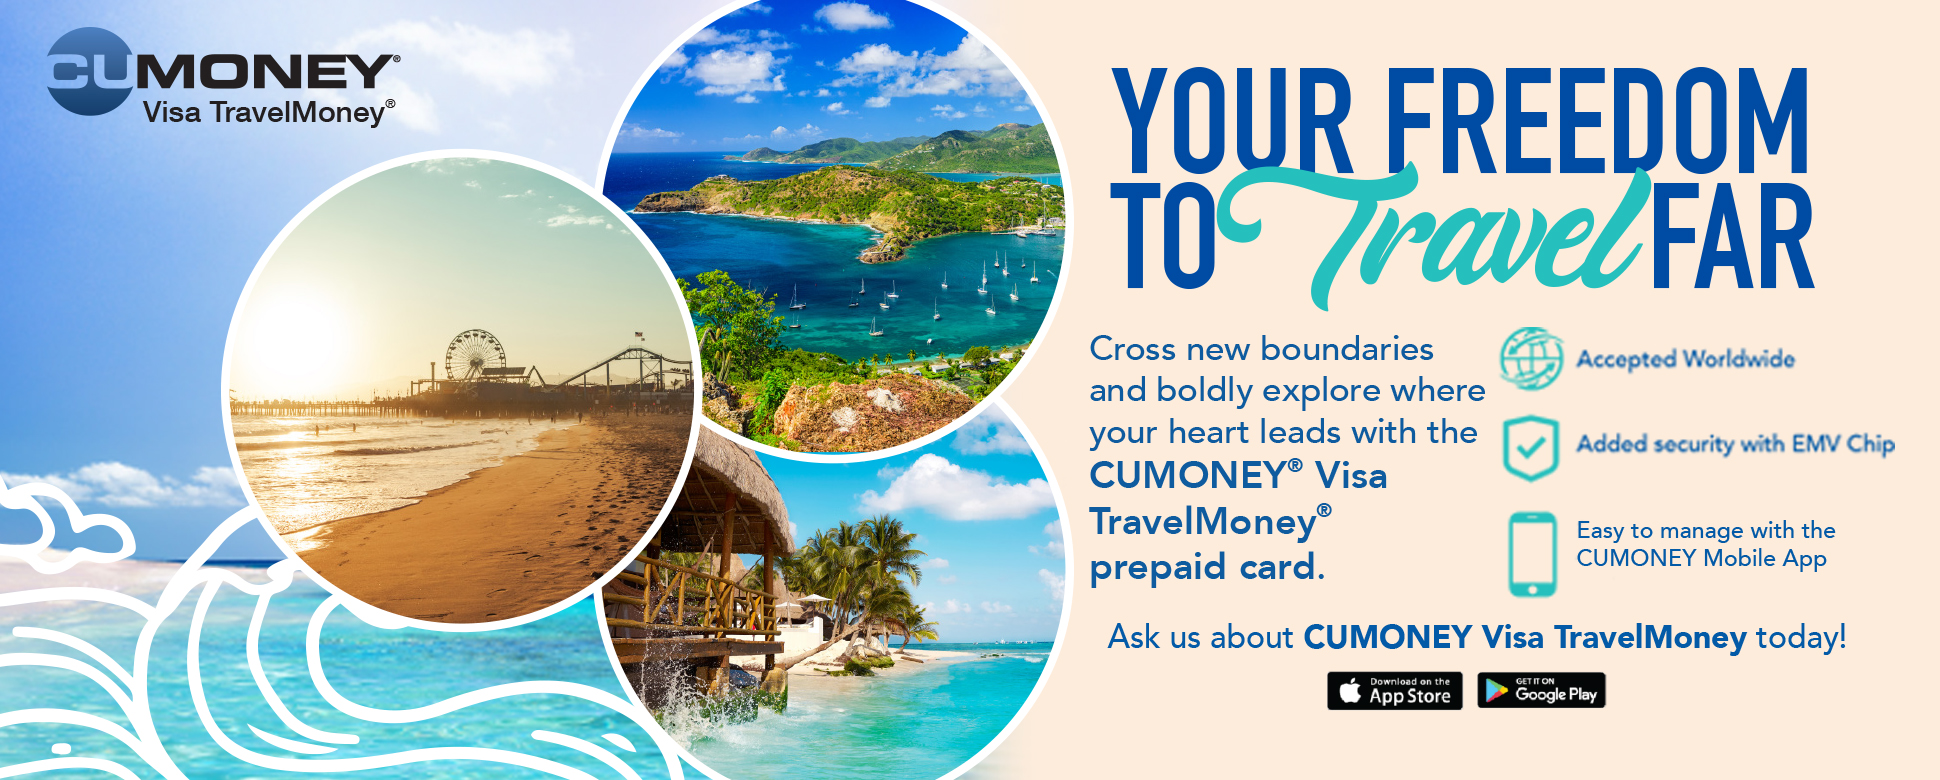 Your freedom to travel far - Ask us about the CUMoney Travel Card.